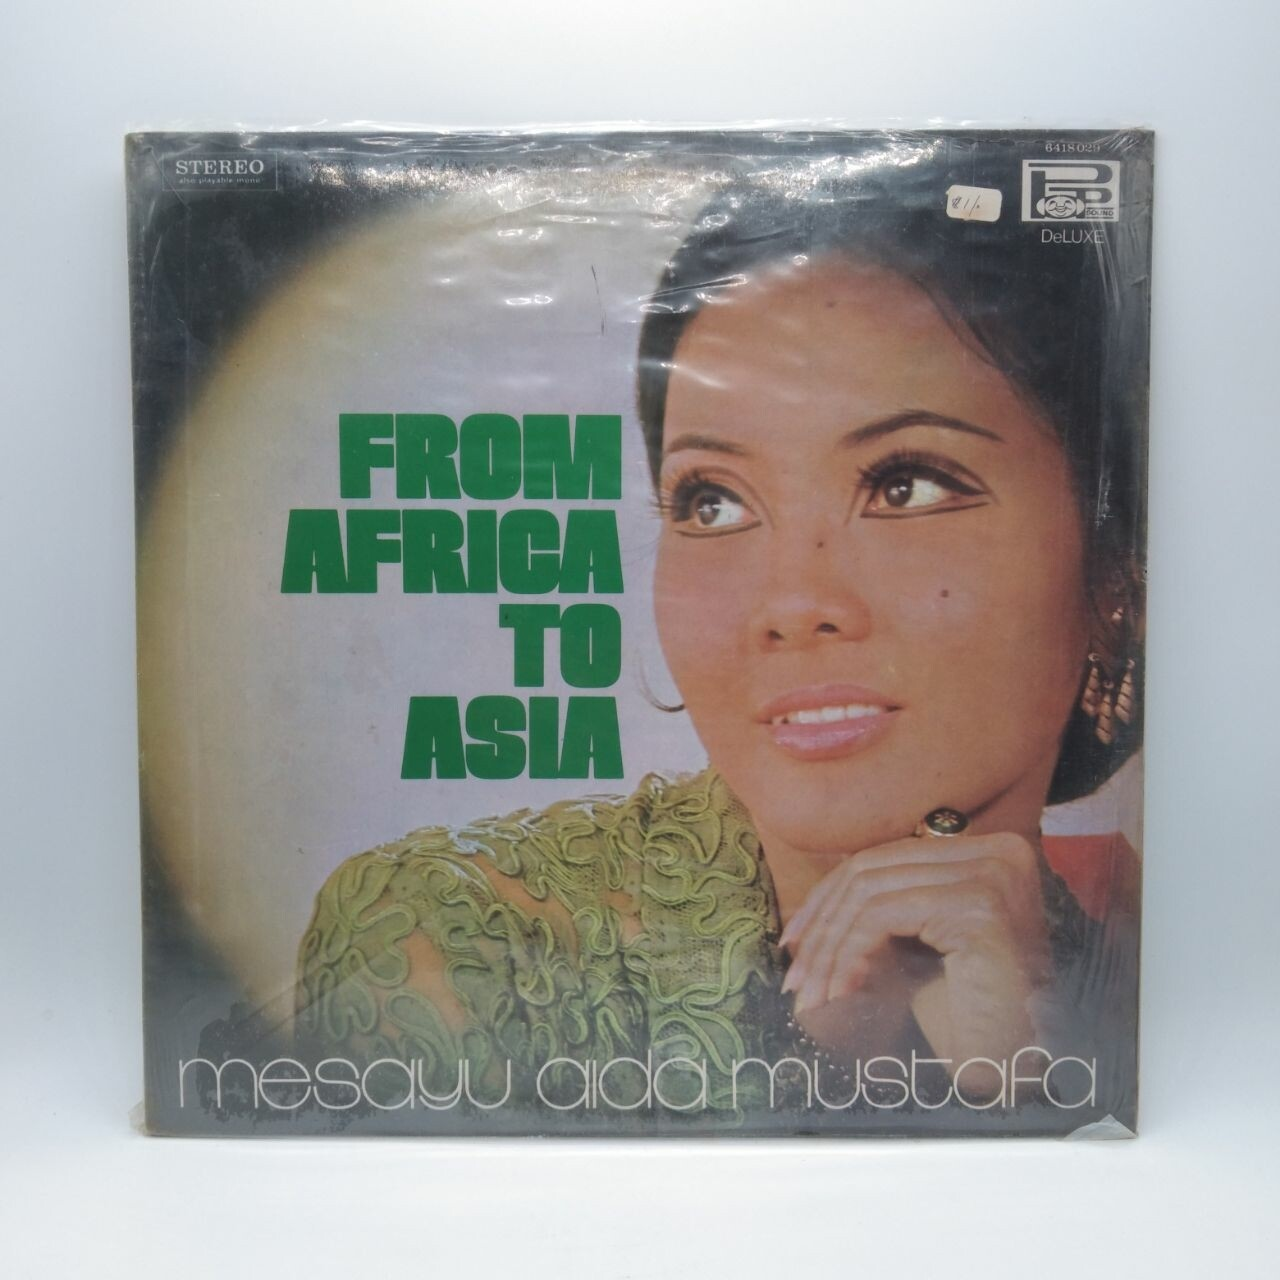 [USED] MESAYU AIDA MUSTAFA -FROM AFRICA TO ASIA- LP